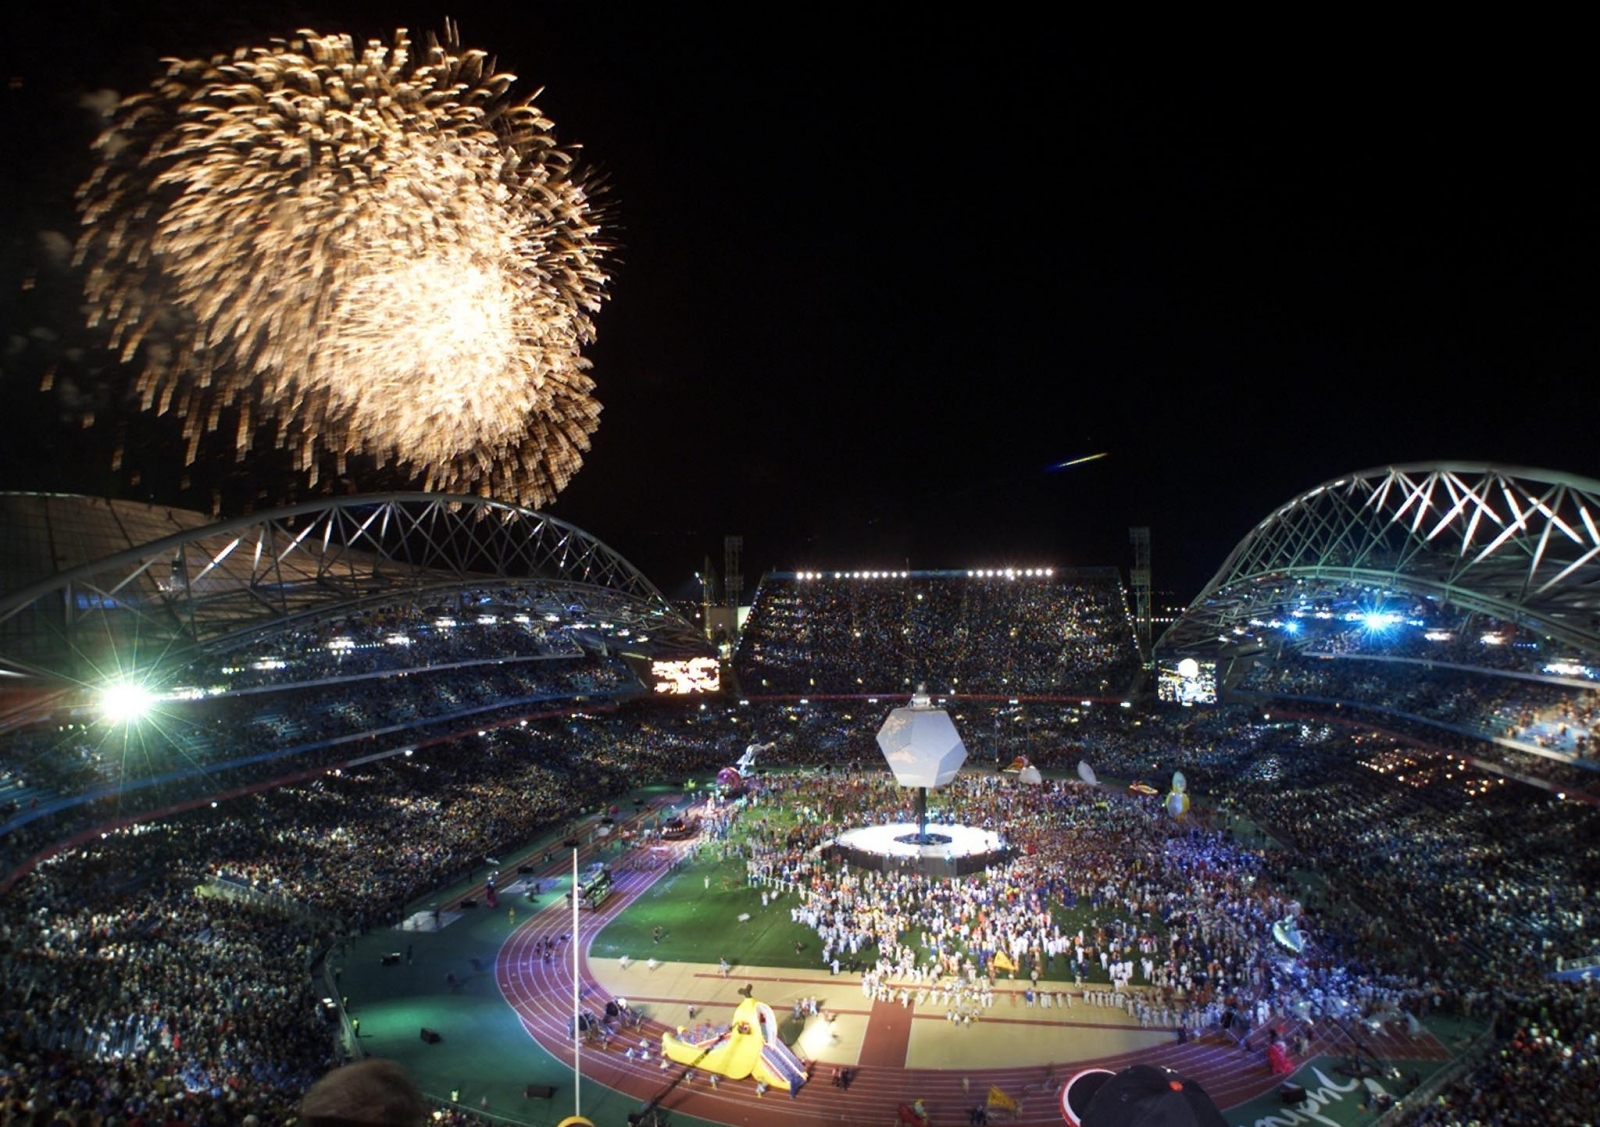 Fireworks explode over Australia's Olympic Stadium during the closing ceremonies of the games in Sydney Games in 2000